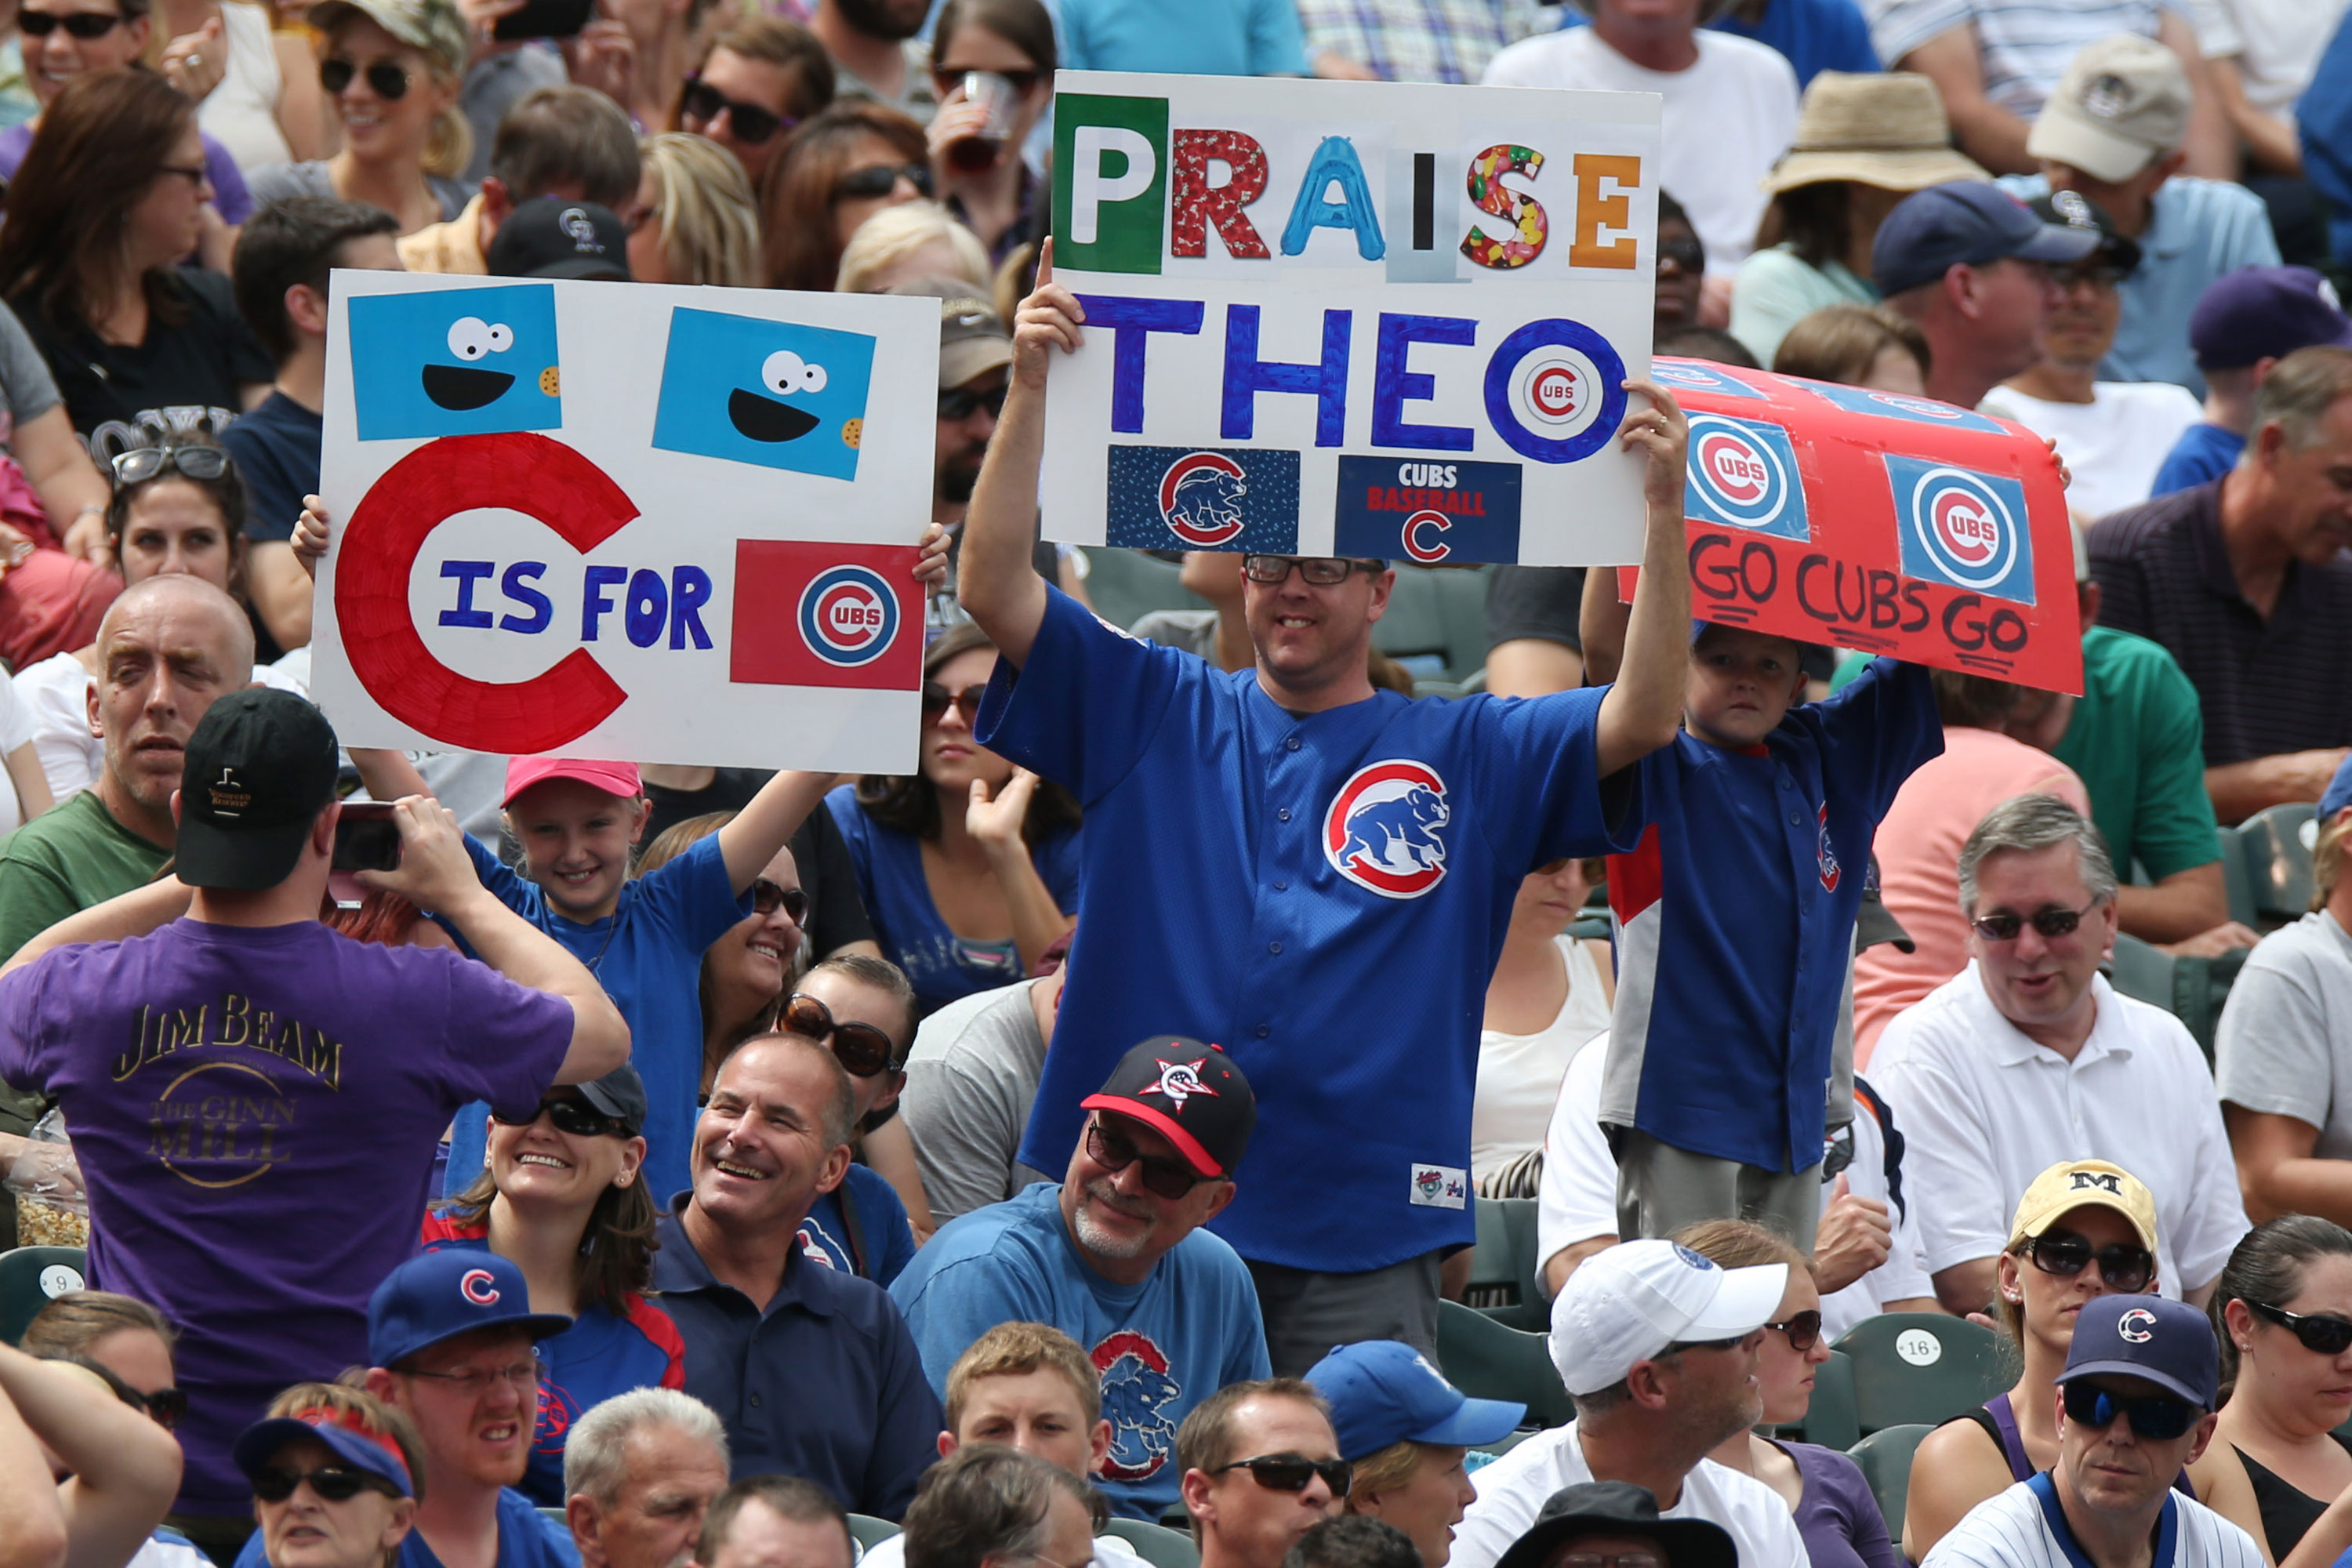 Photo: Chicago Cubs Fans At Coors Field, AP, Aug 7 2014